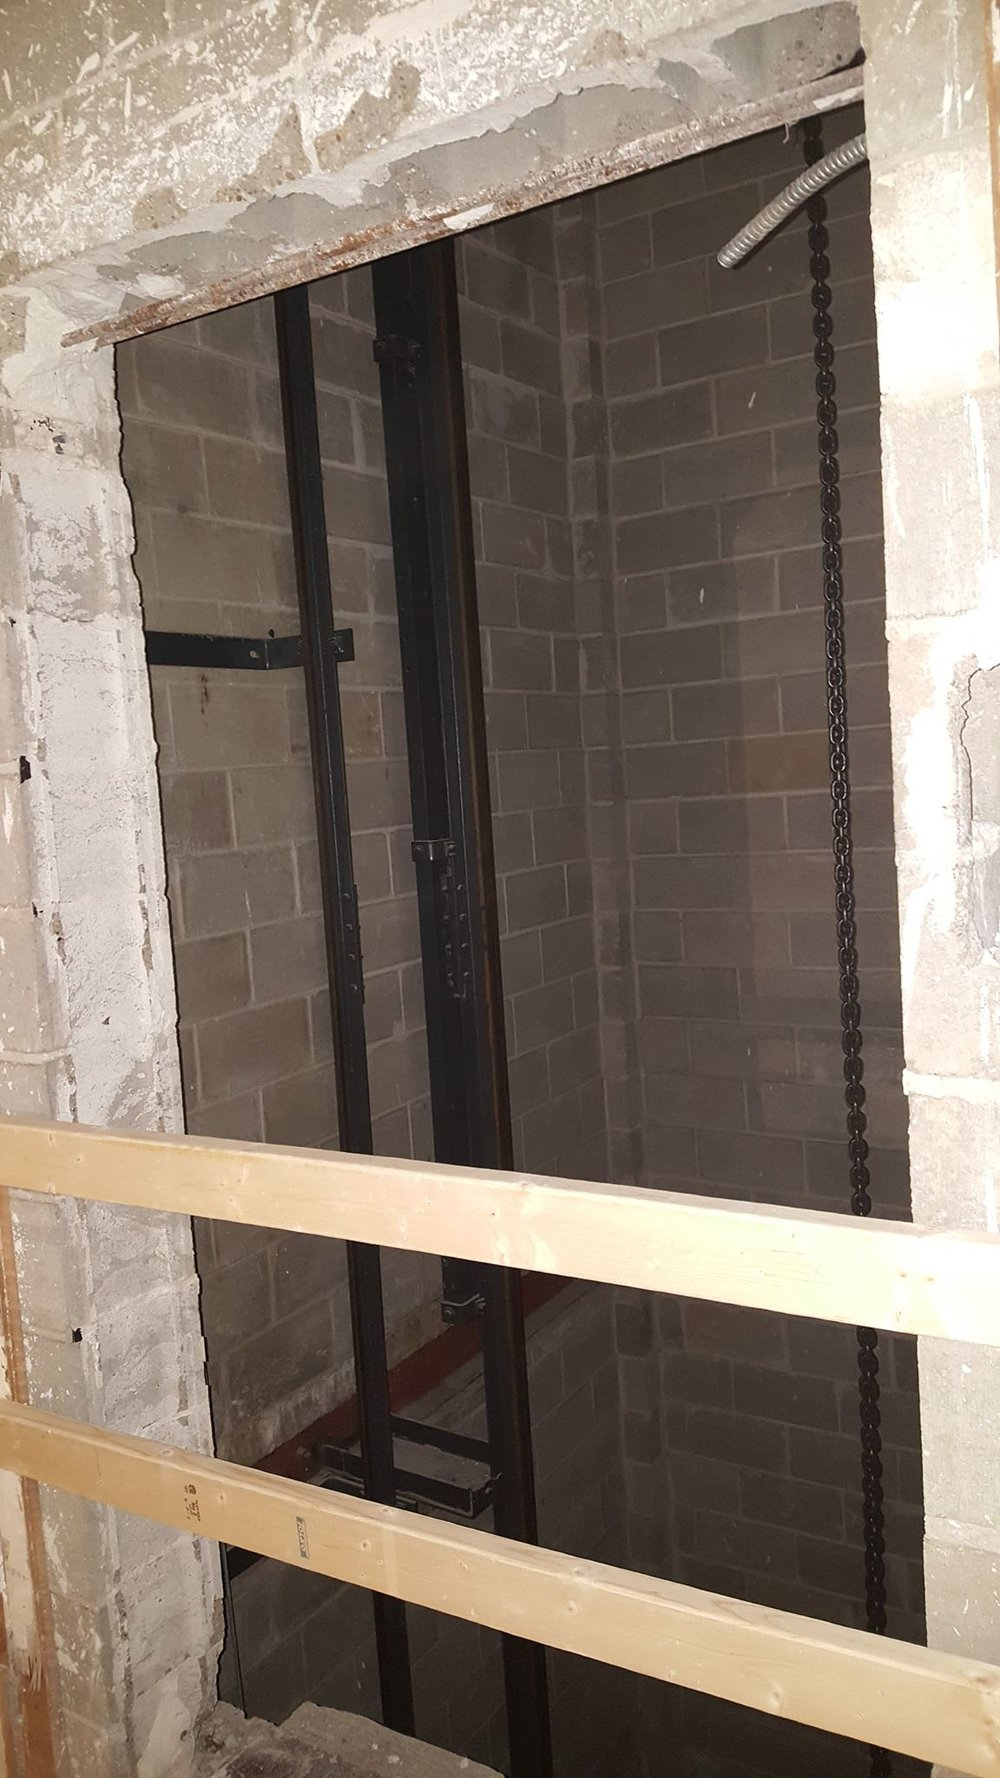 Not too long from now this will be a functioning elevator-min.jpg